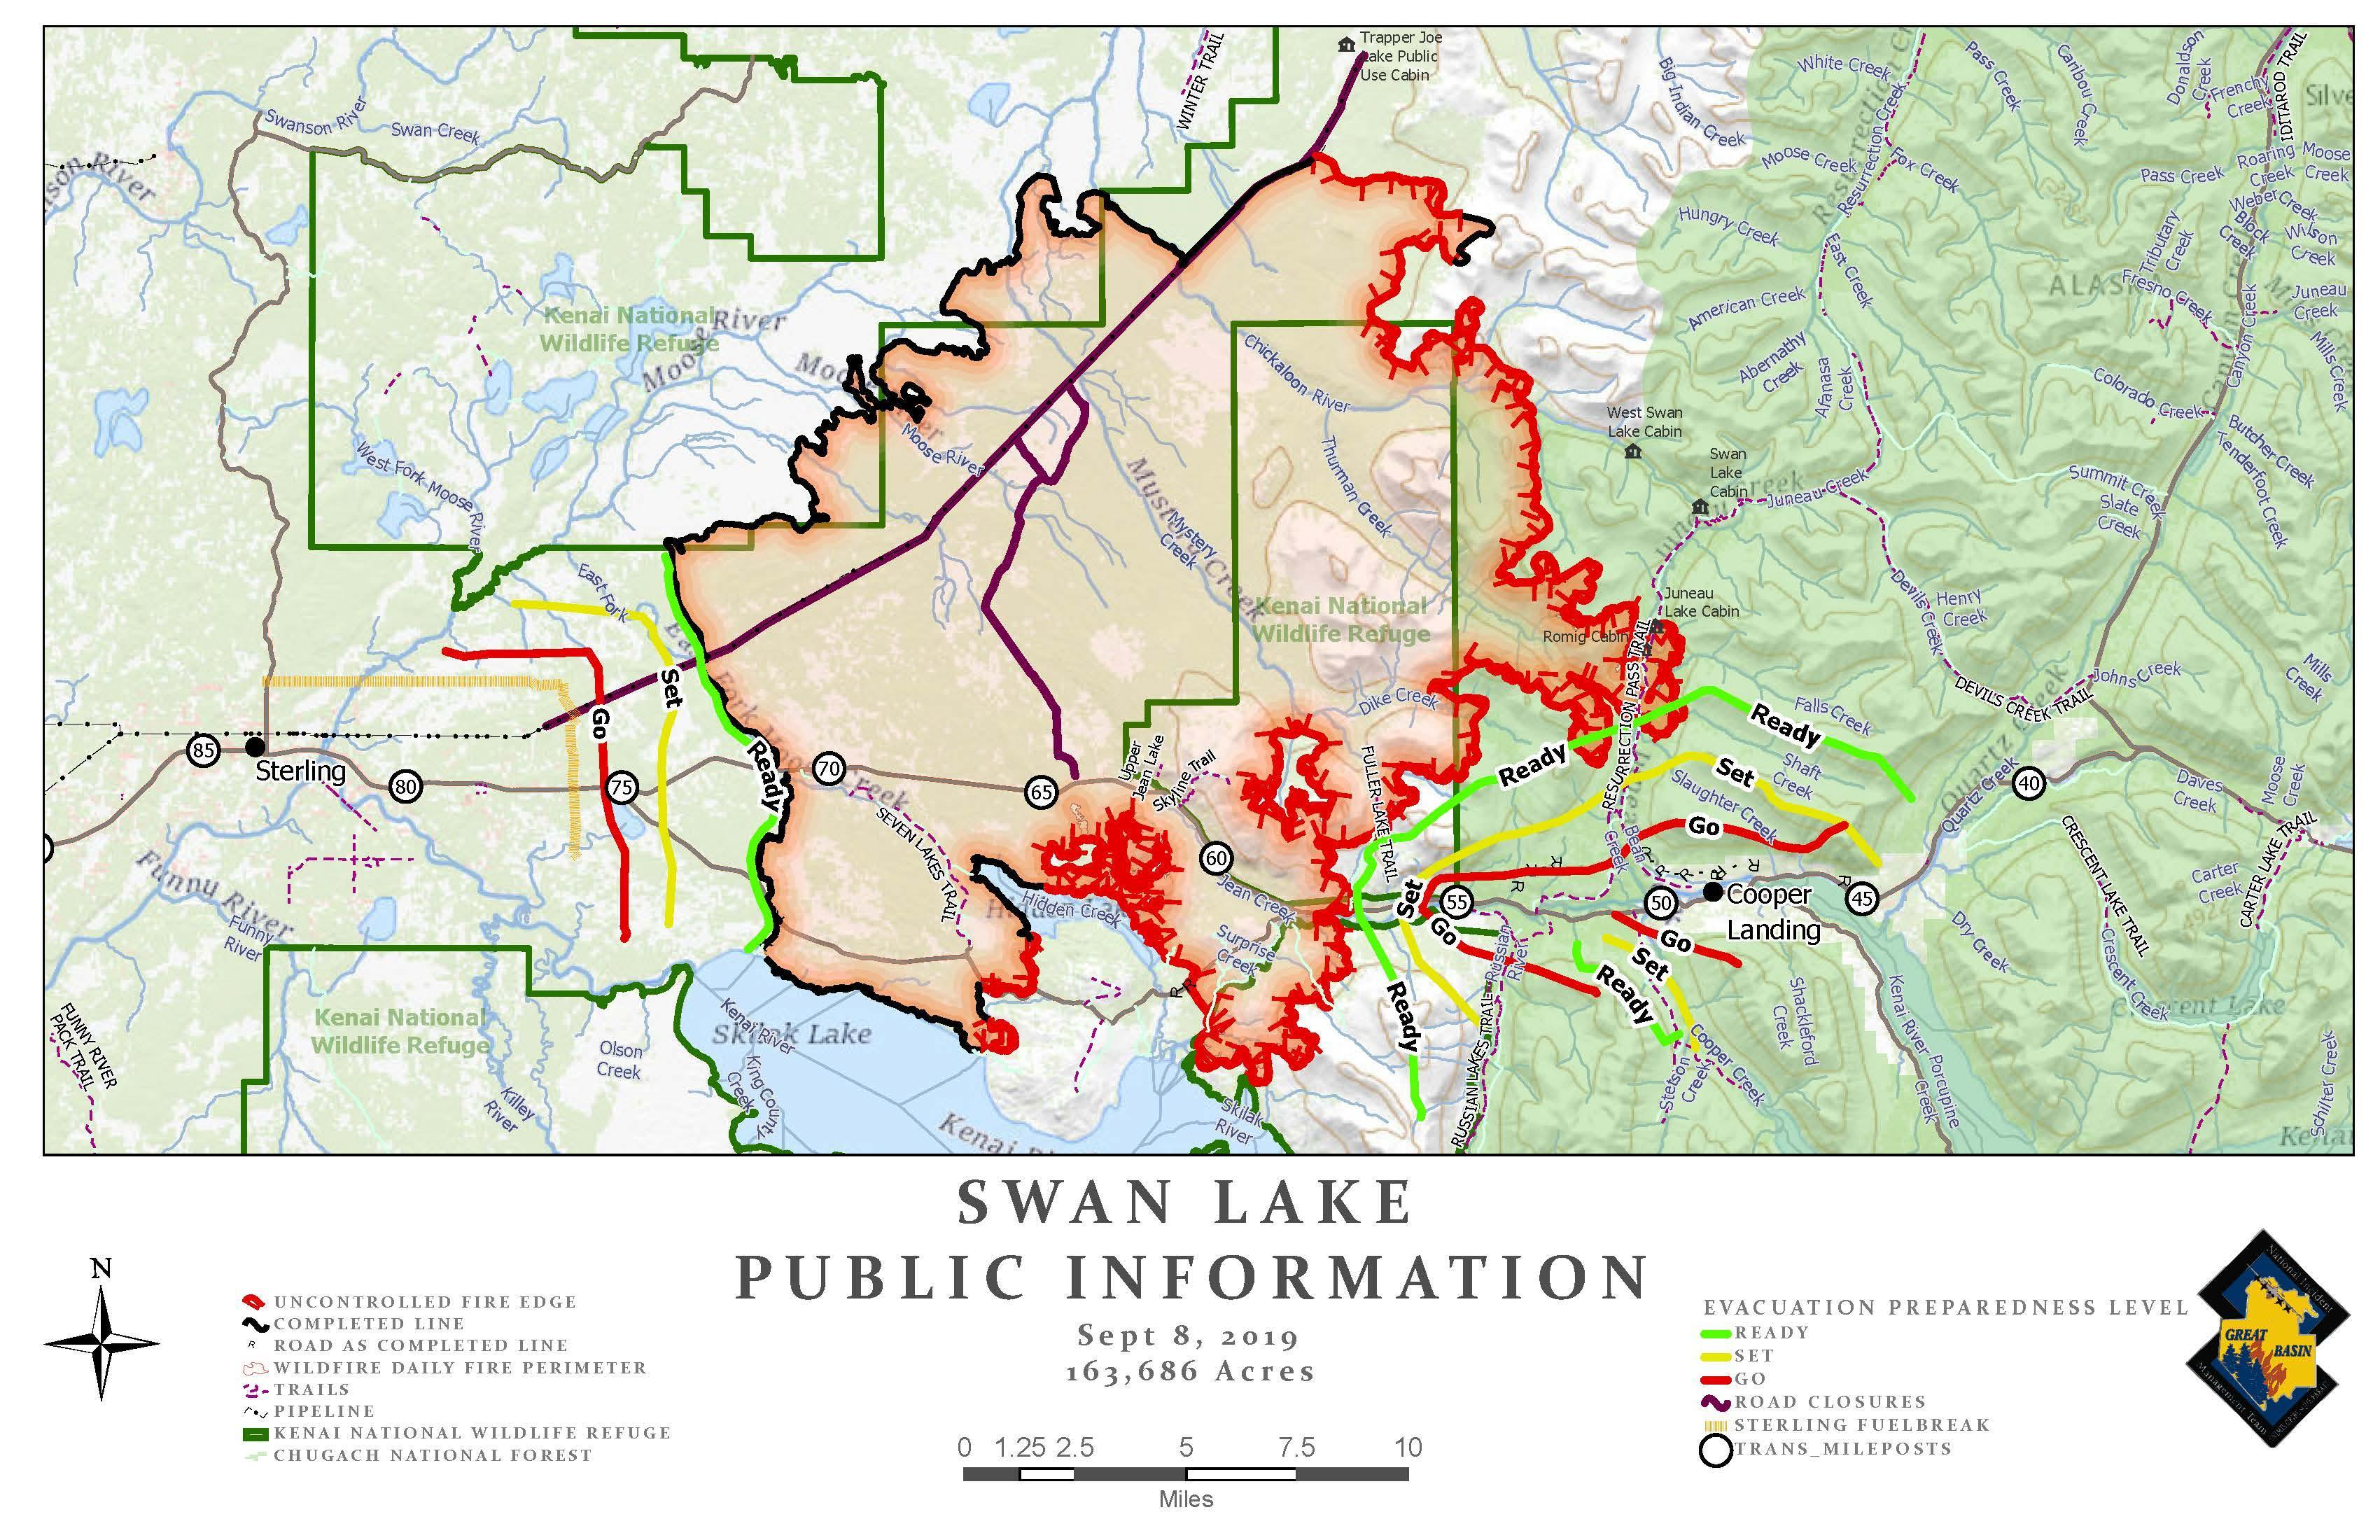 Swan Lake Fire Public Information Map - Sept. 8